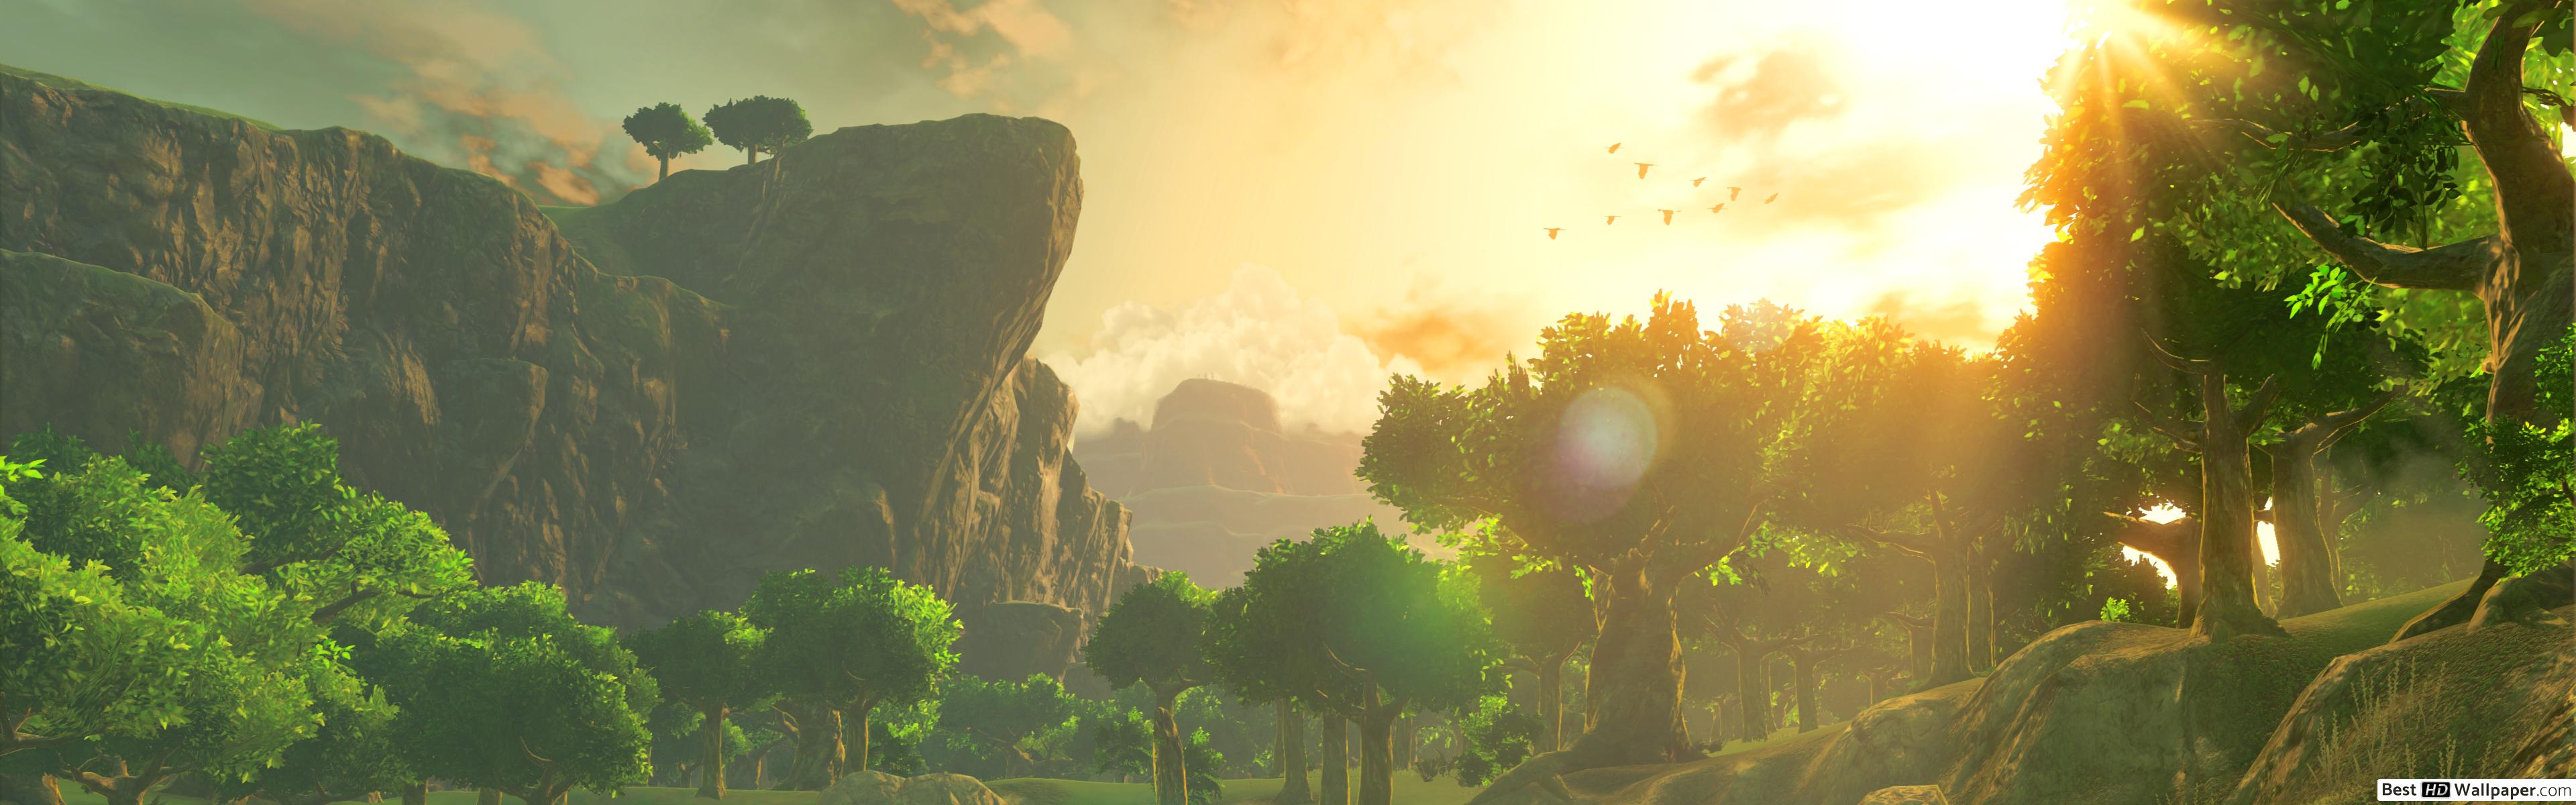 Legend Of Zelda Dual Monitor Wallpaper Posted By Christopher Sellers